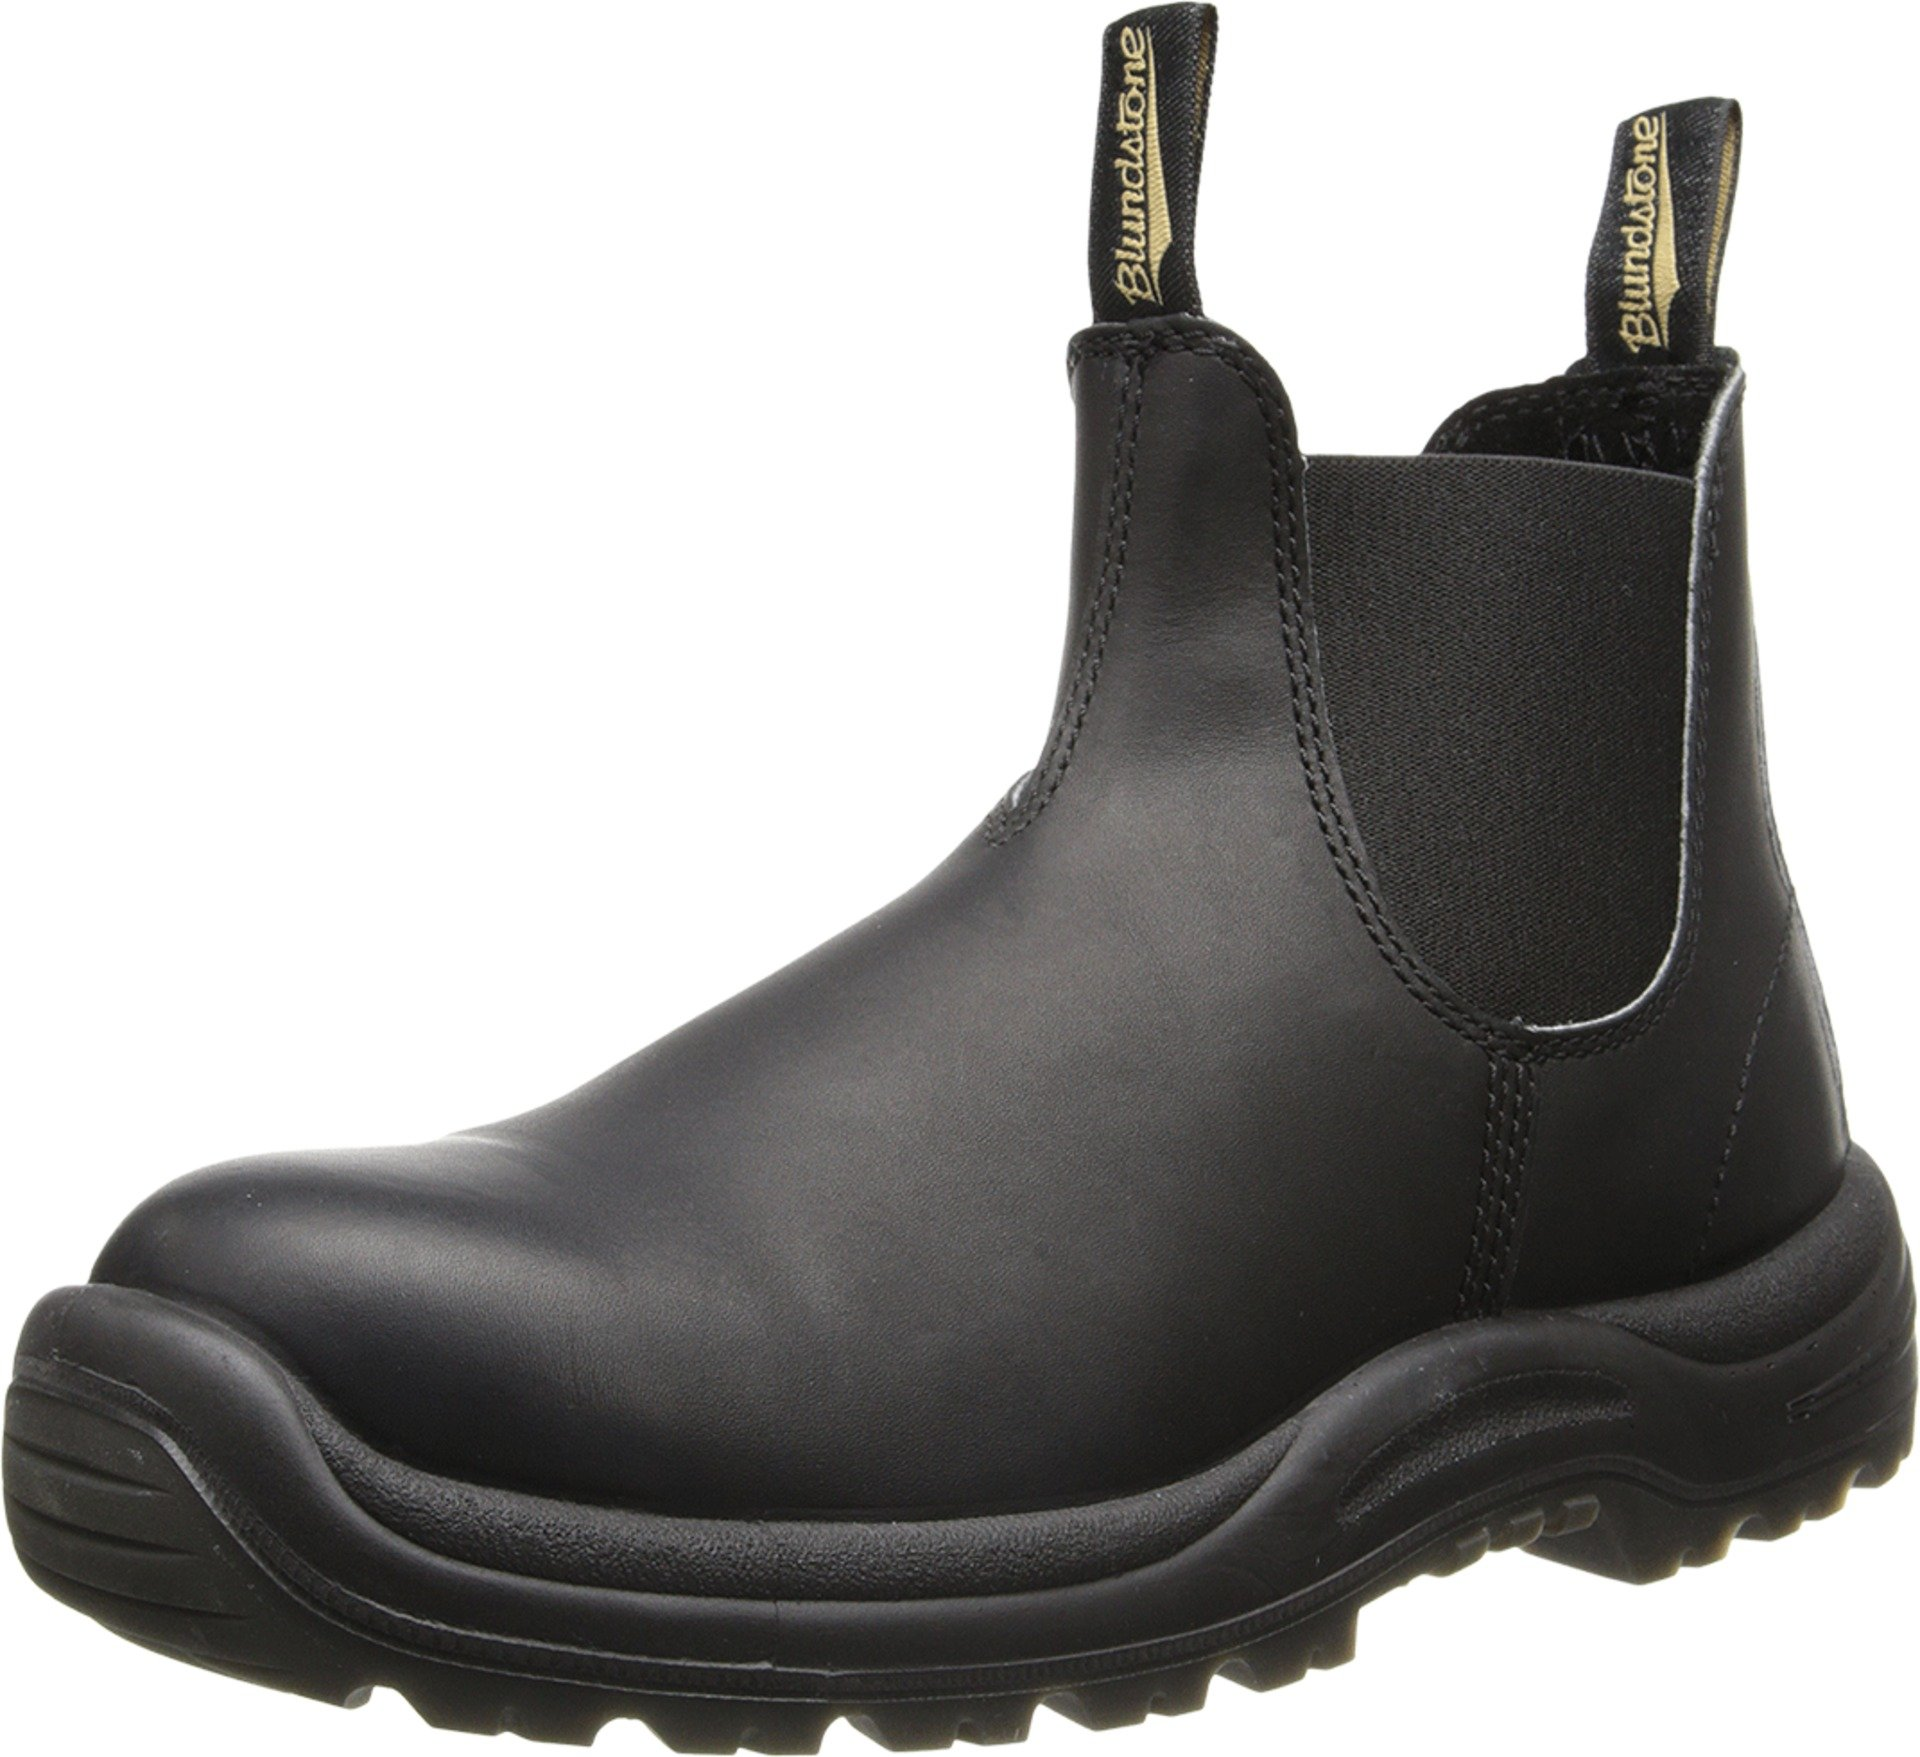 Blundstone Men's Work Series 179,Black,12 UK/13 M US by Blundstone